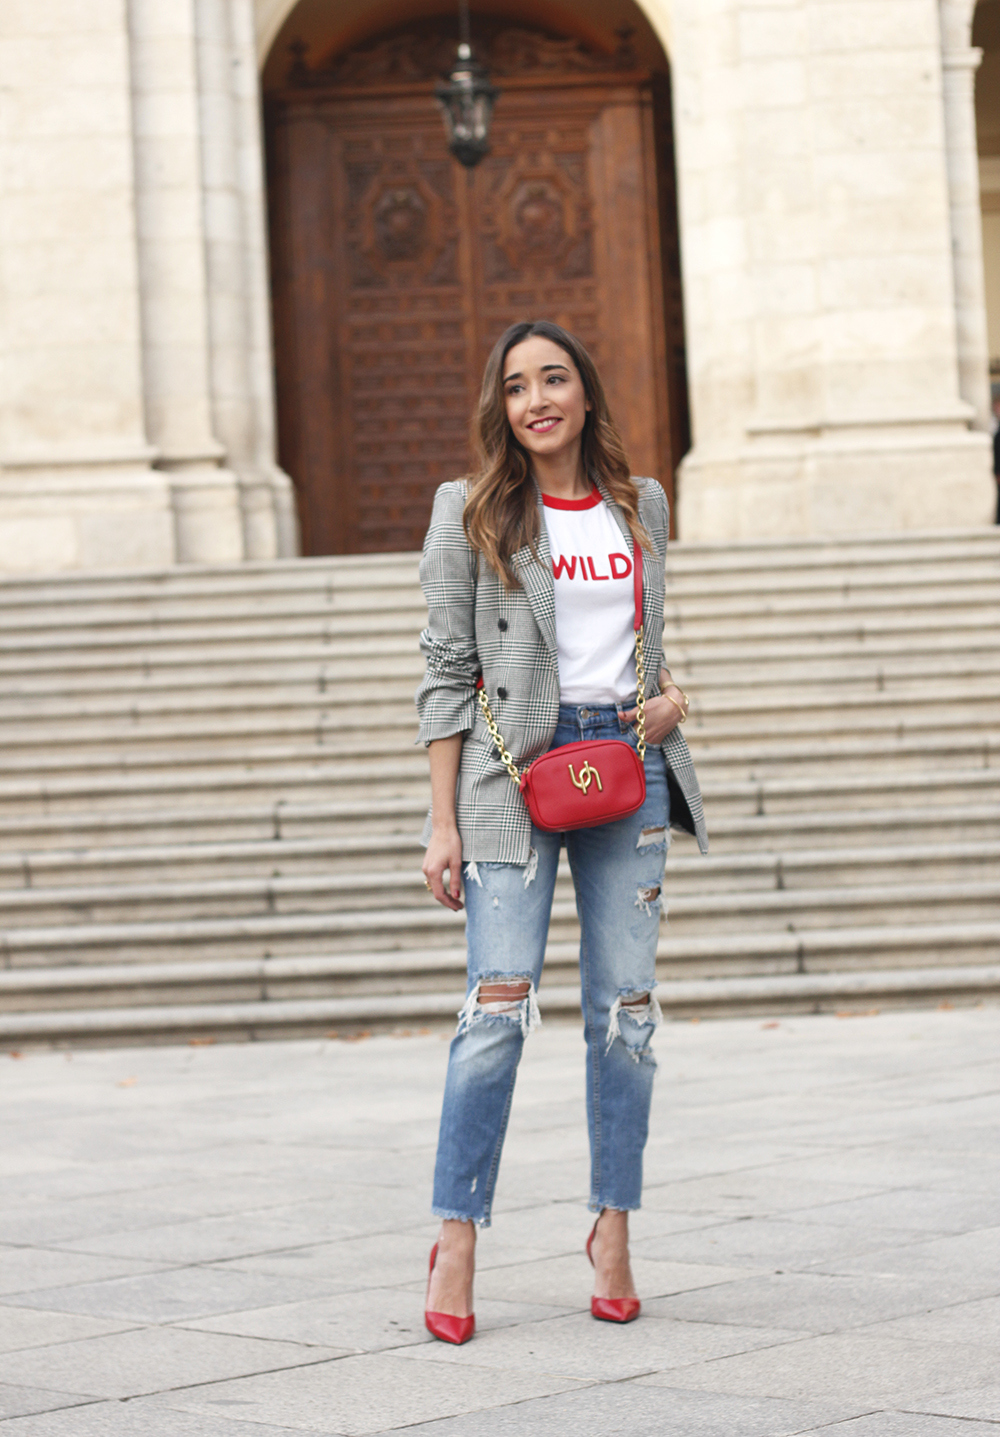 Prince of wales print blazer ripped jeans red heels uterqüe style trend fall outfit04